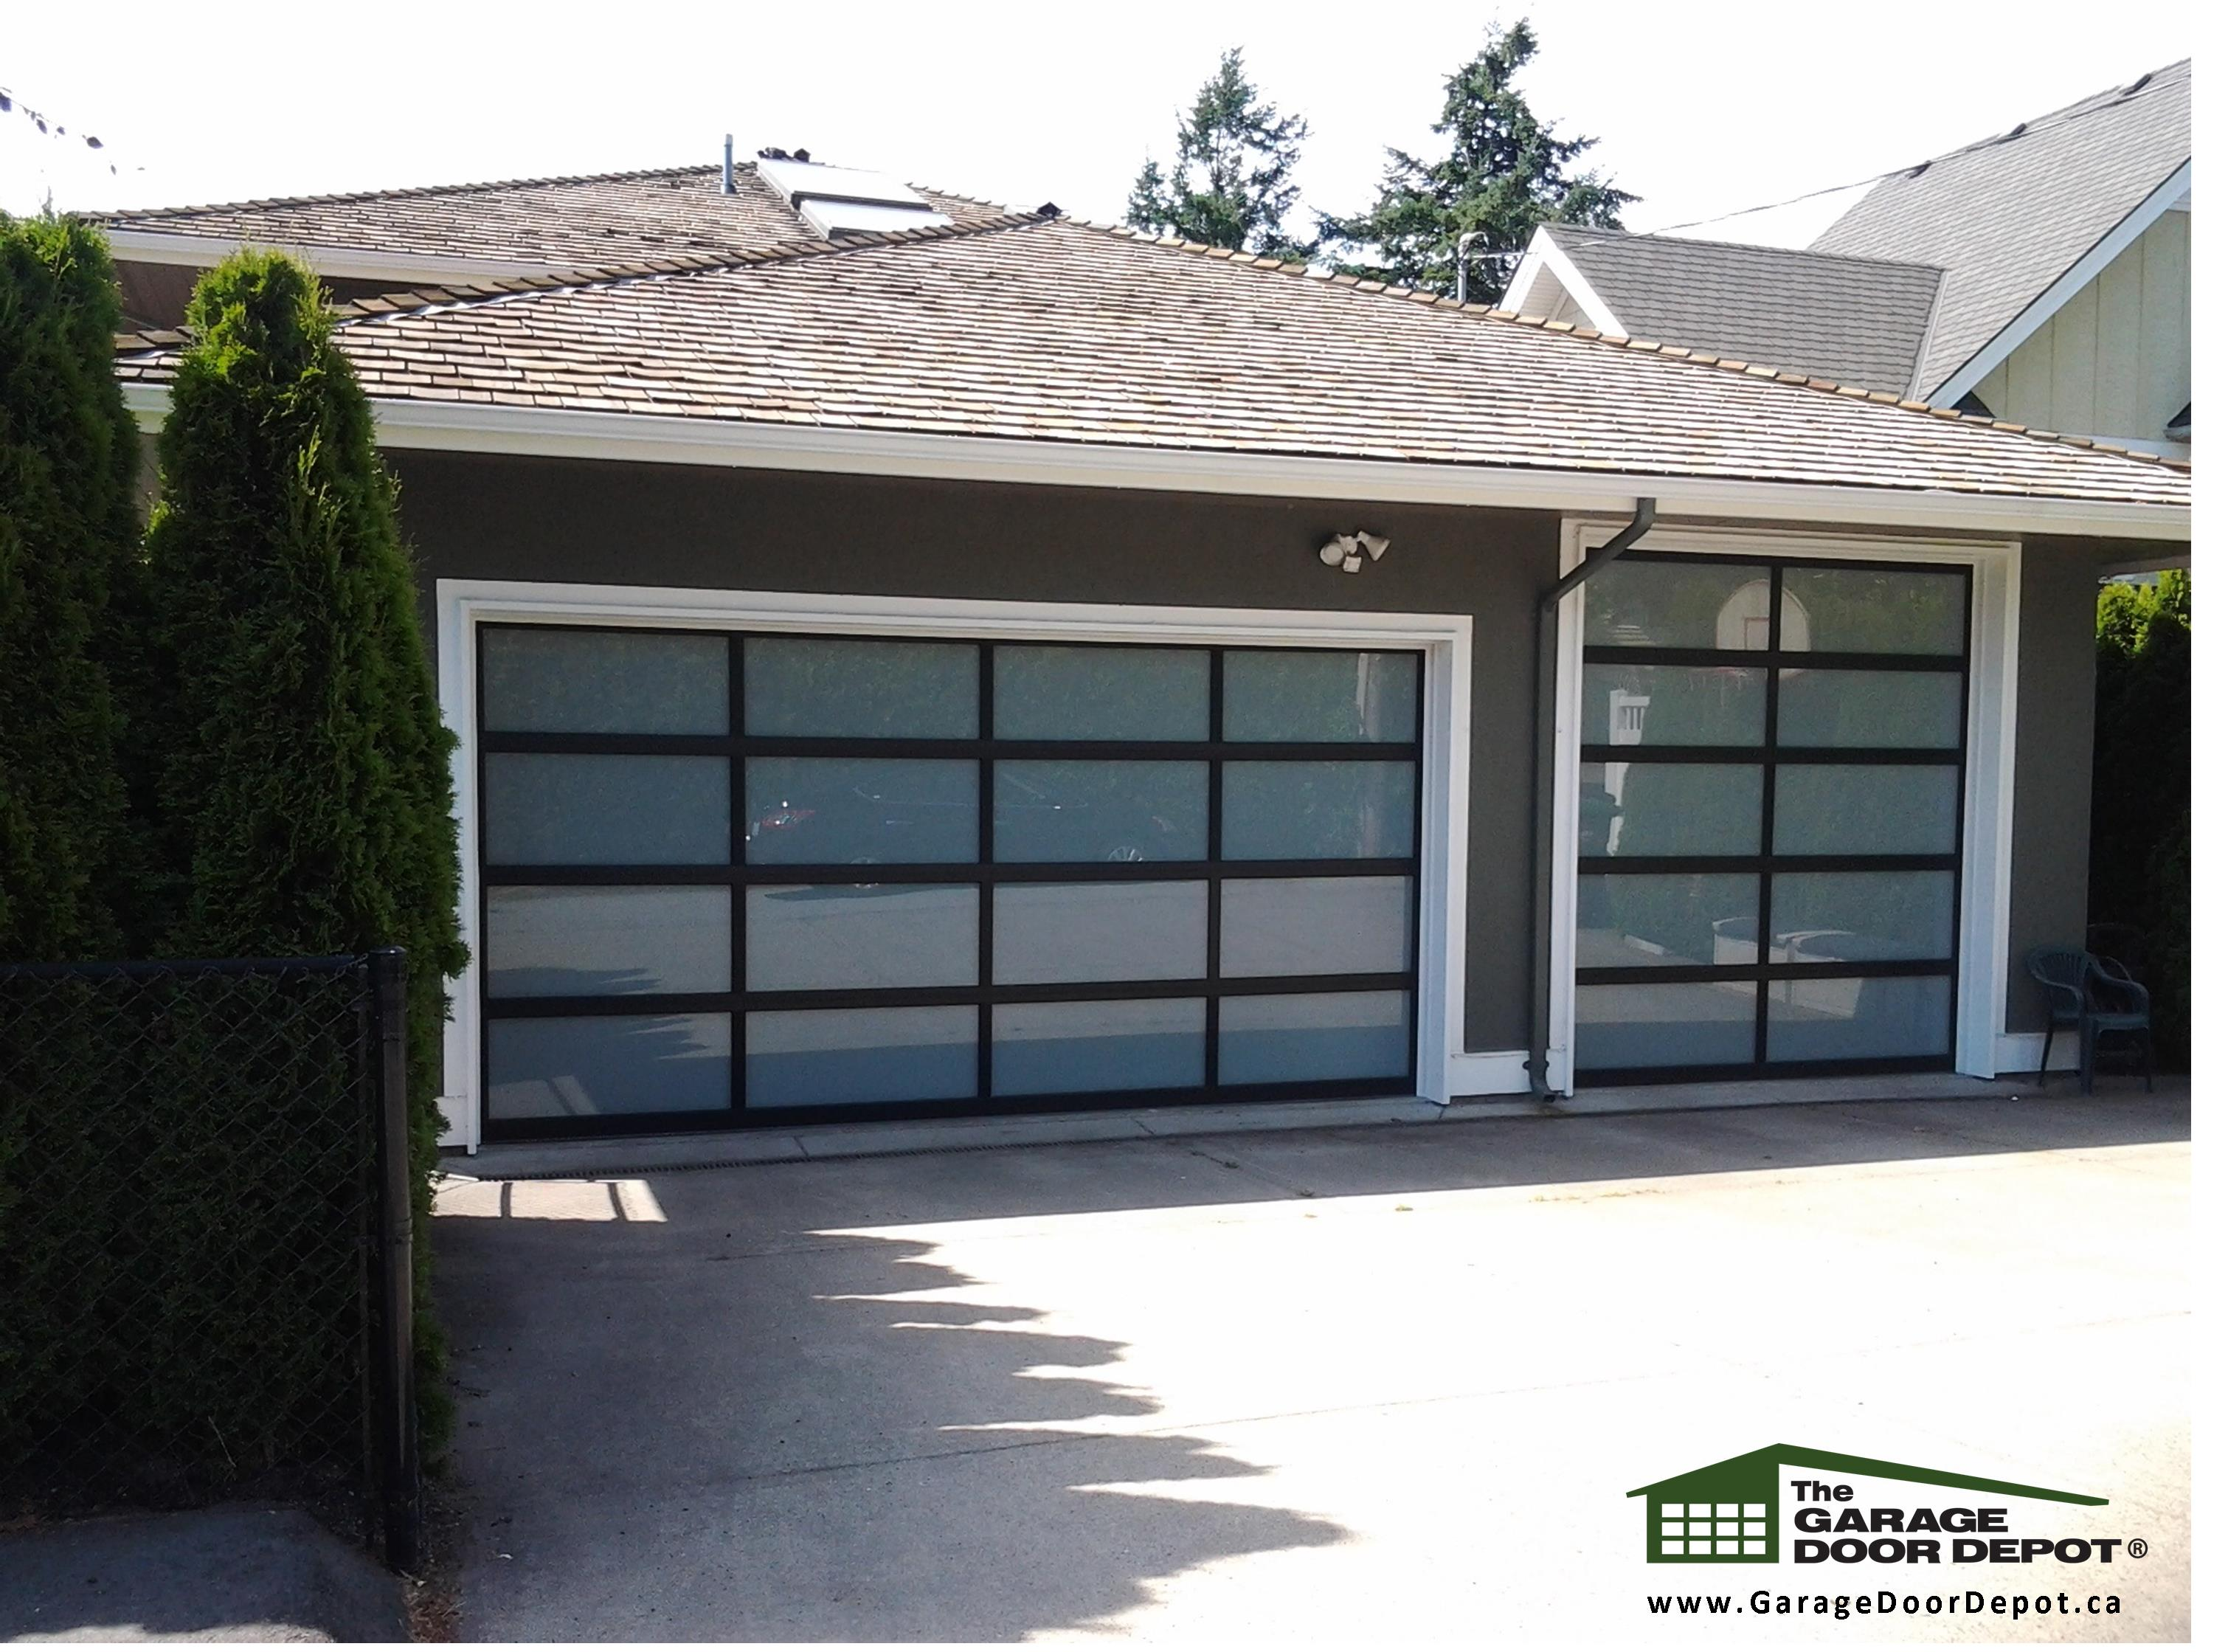 jose free san let the garage quote your fix door s repair stockon